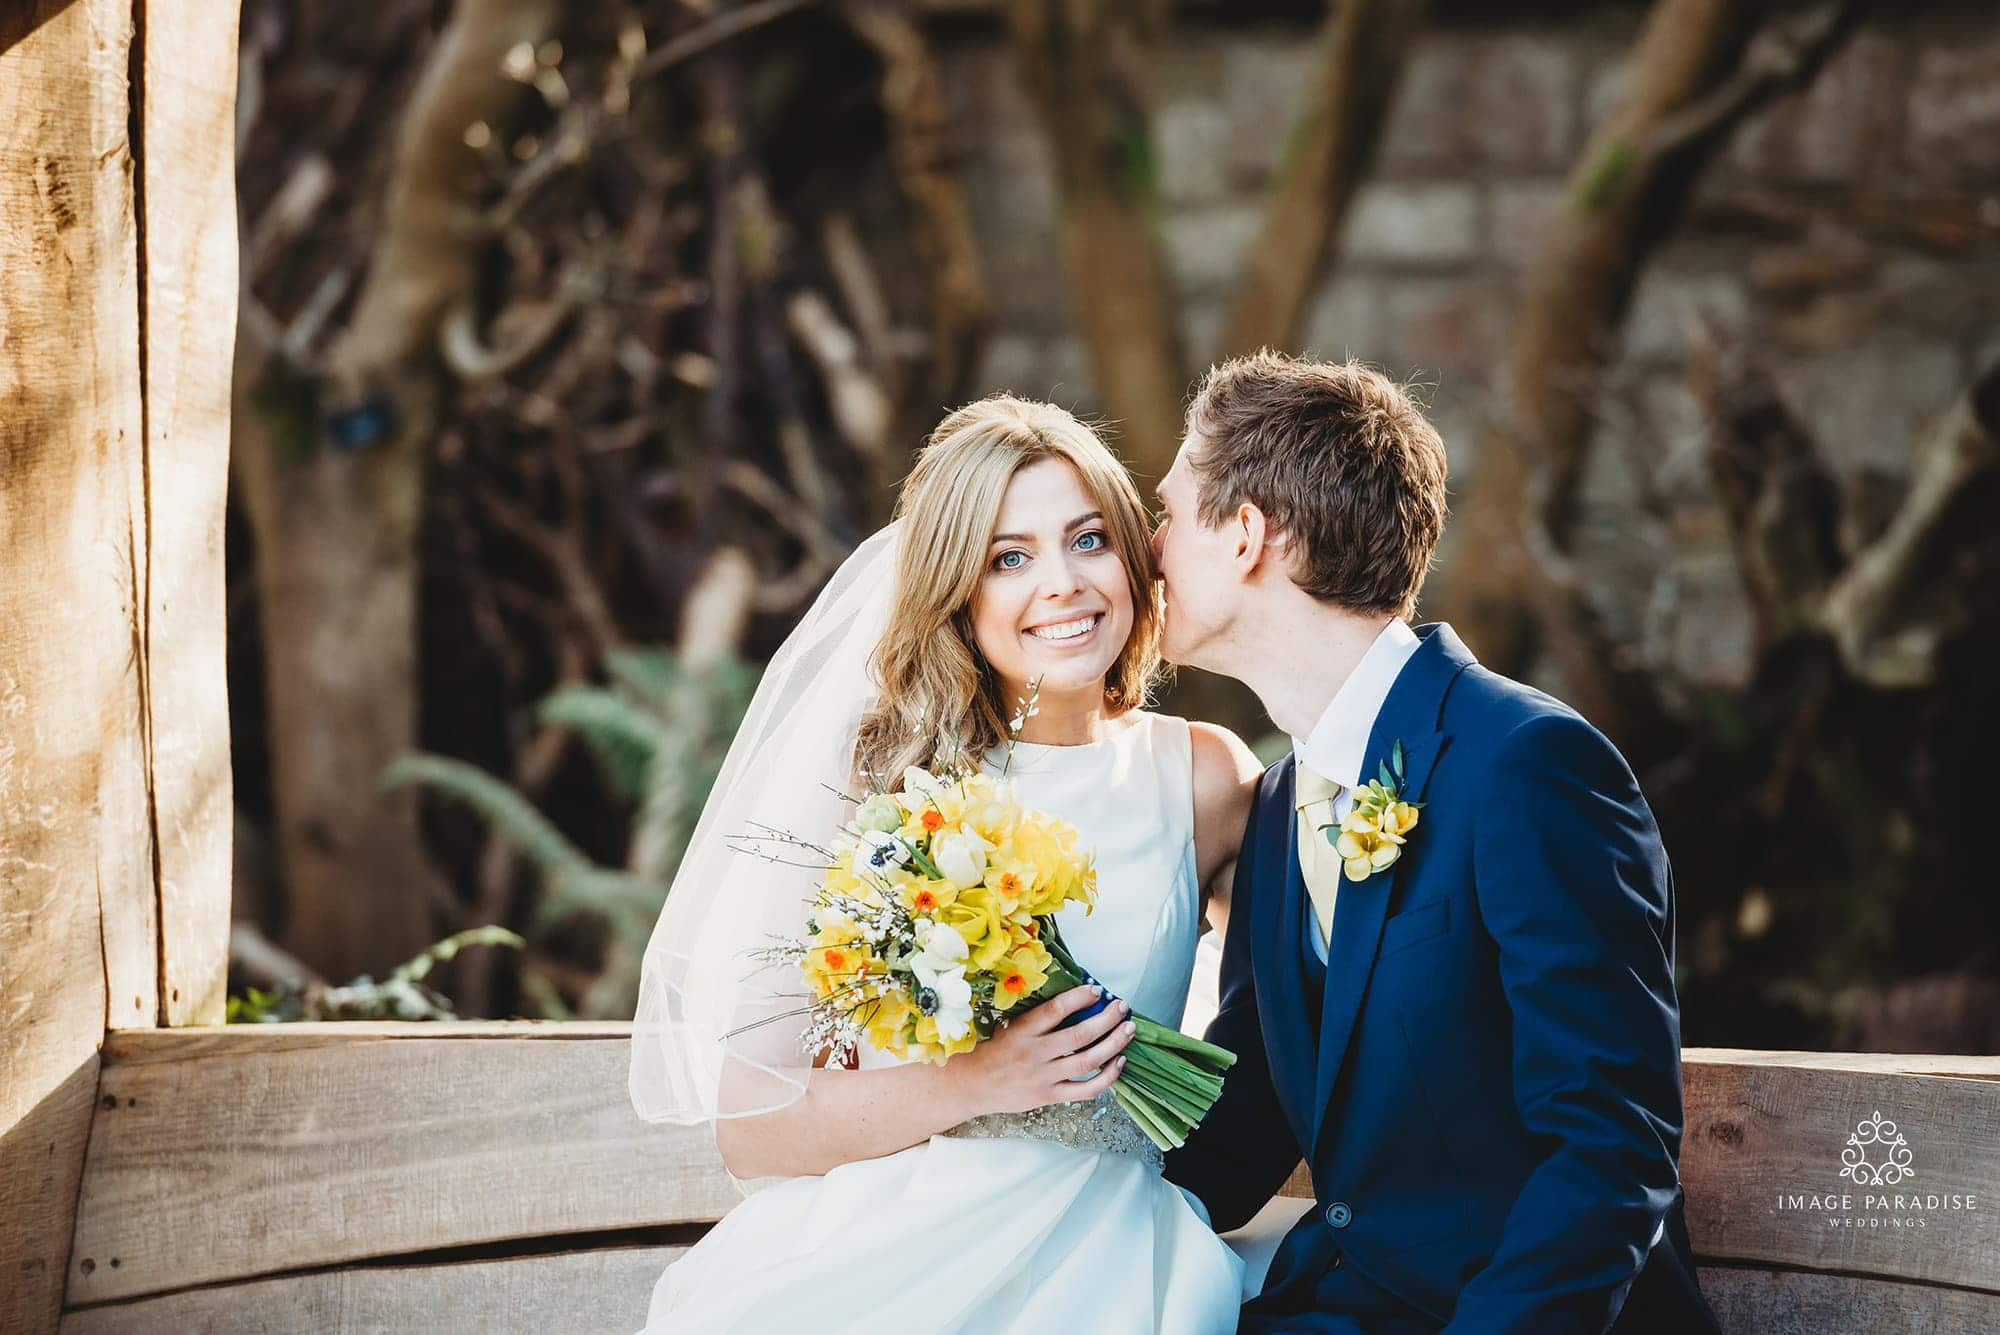 Bride and groom share a moment together in the gardens of their Bristol zoo wedding